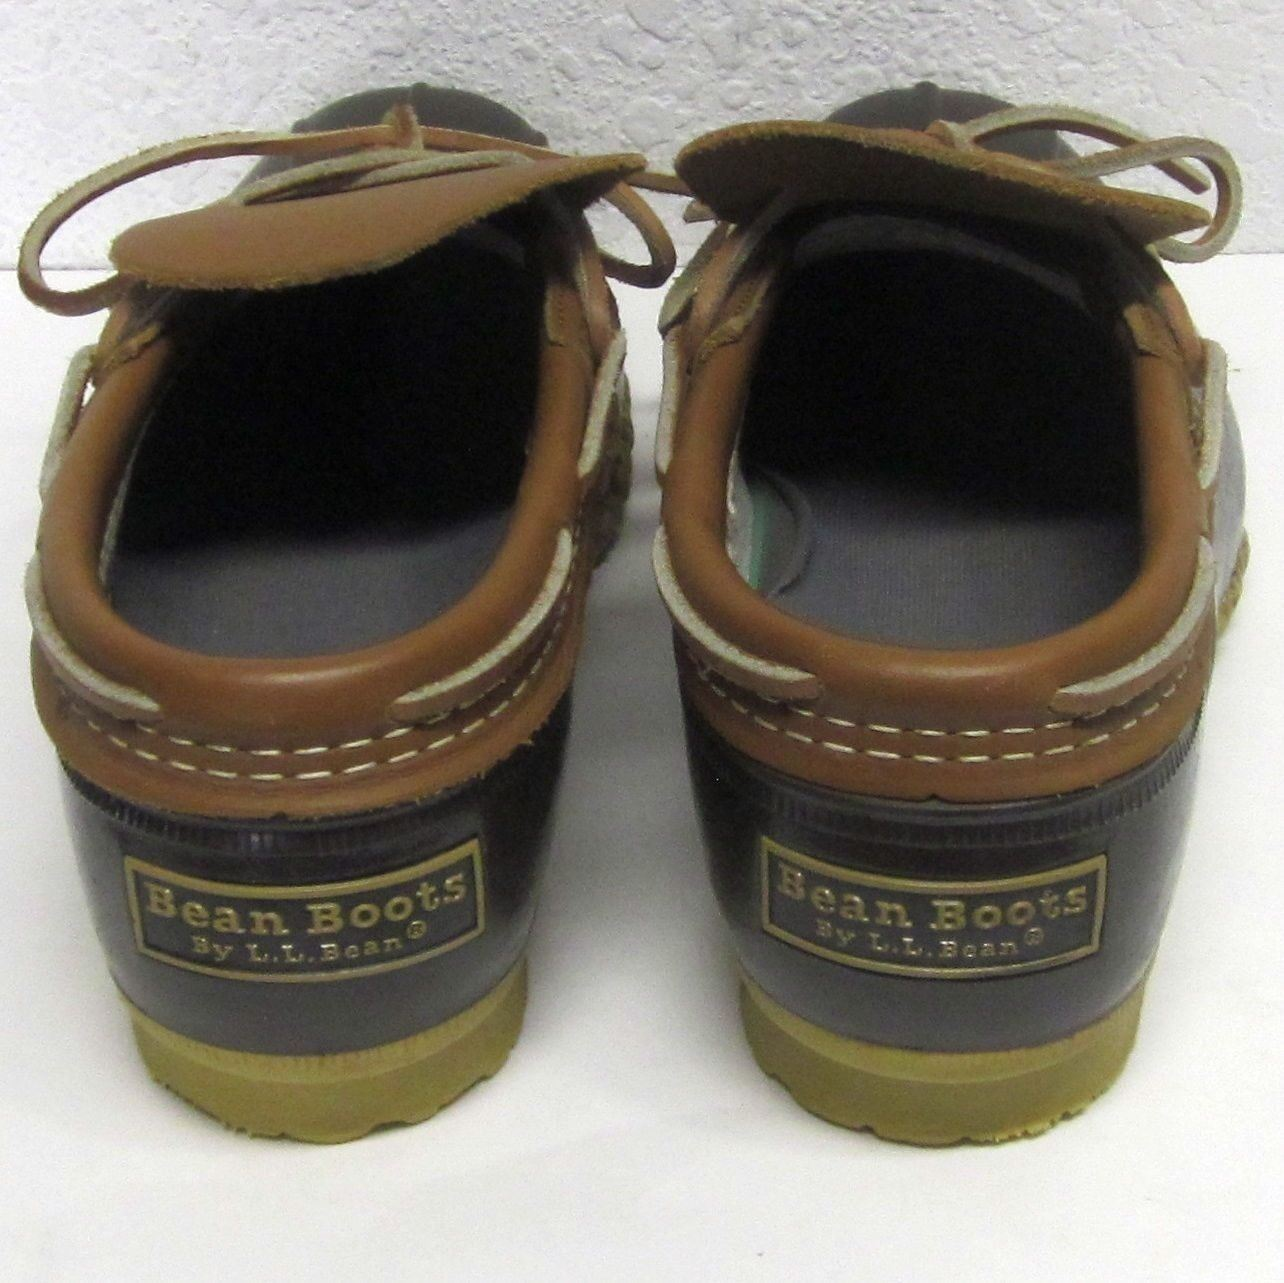 L.L BEAN MAINE HUNTING SHOE WOMEN'S (7 M) LEATHER RUBBER USA SLIP ON WATER PROOF USA RUBBER 601f8b